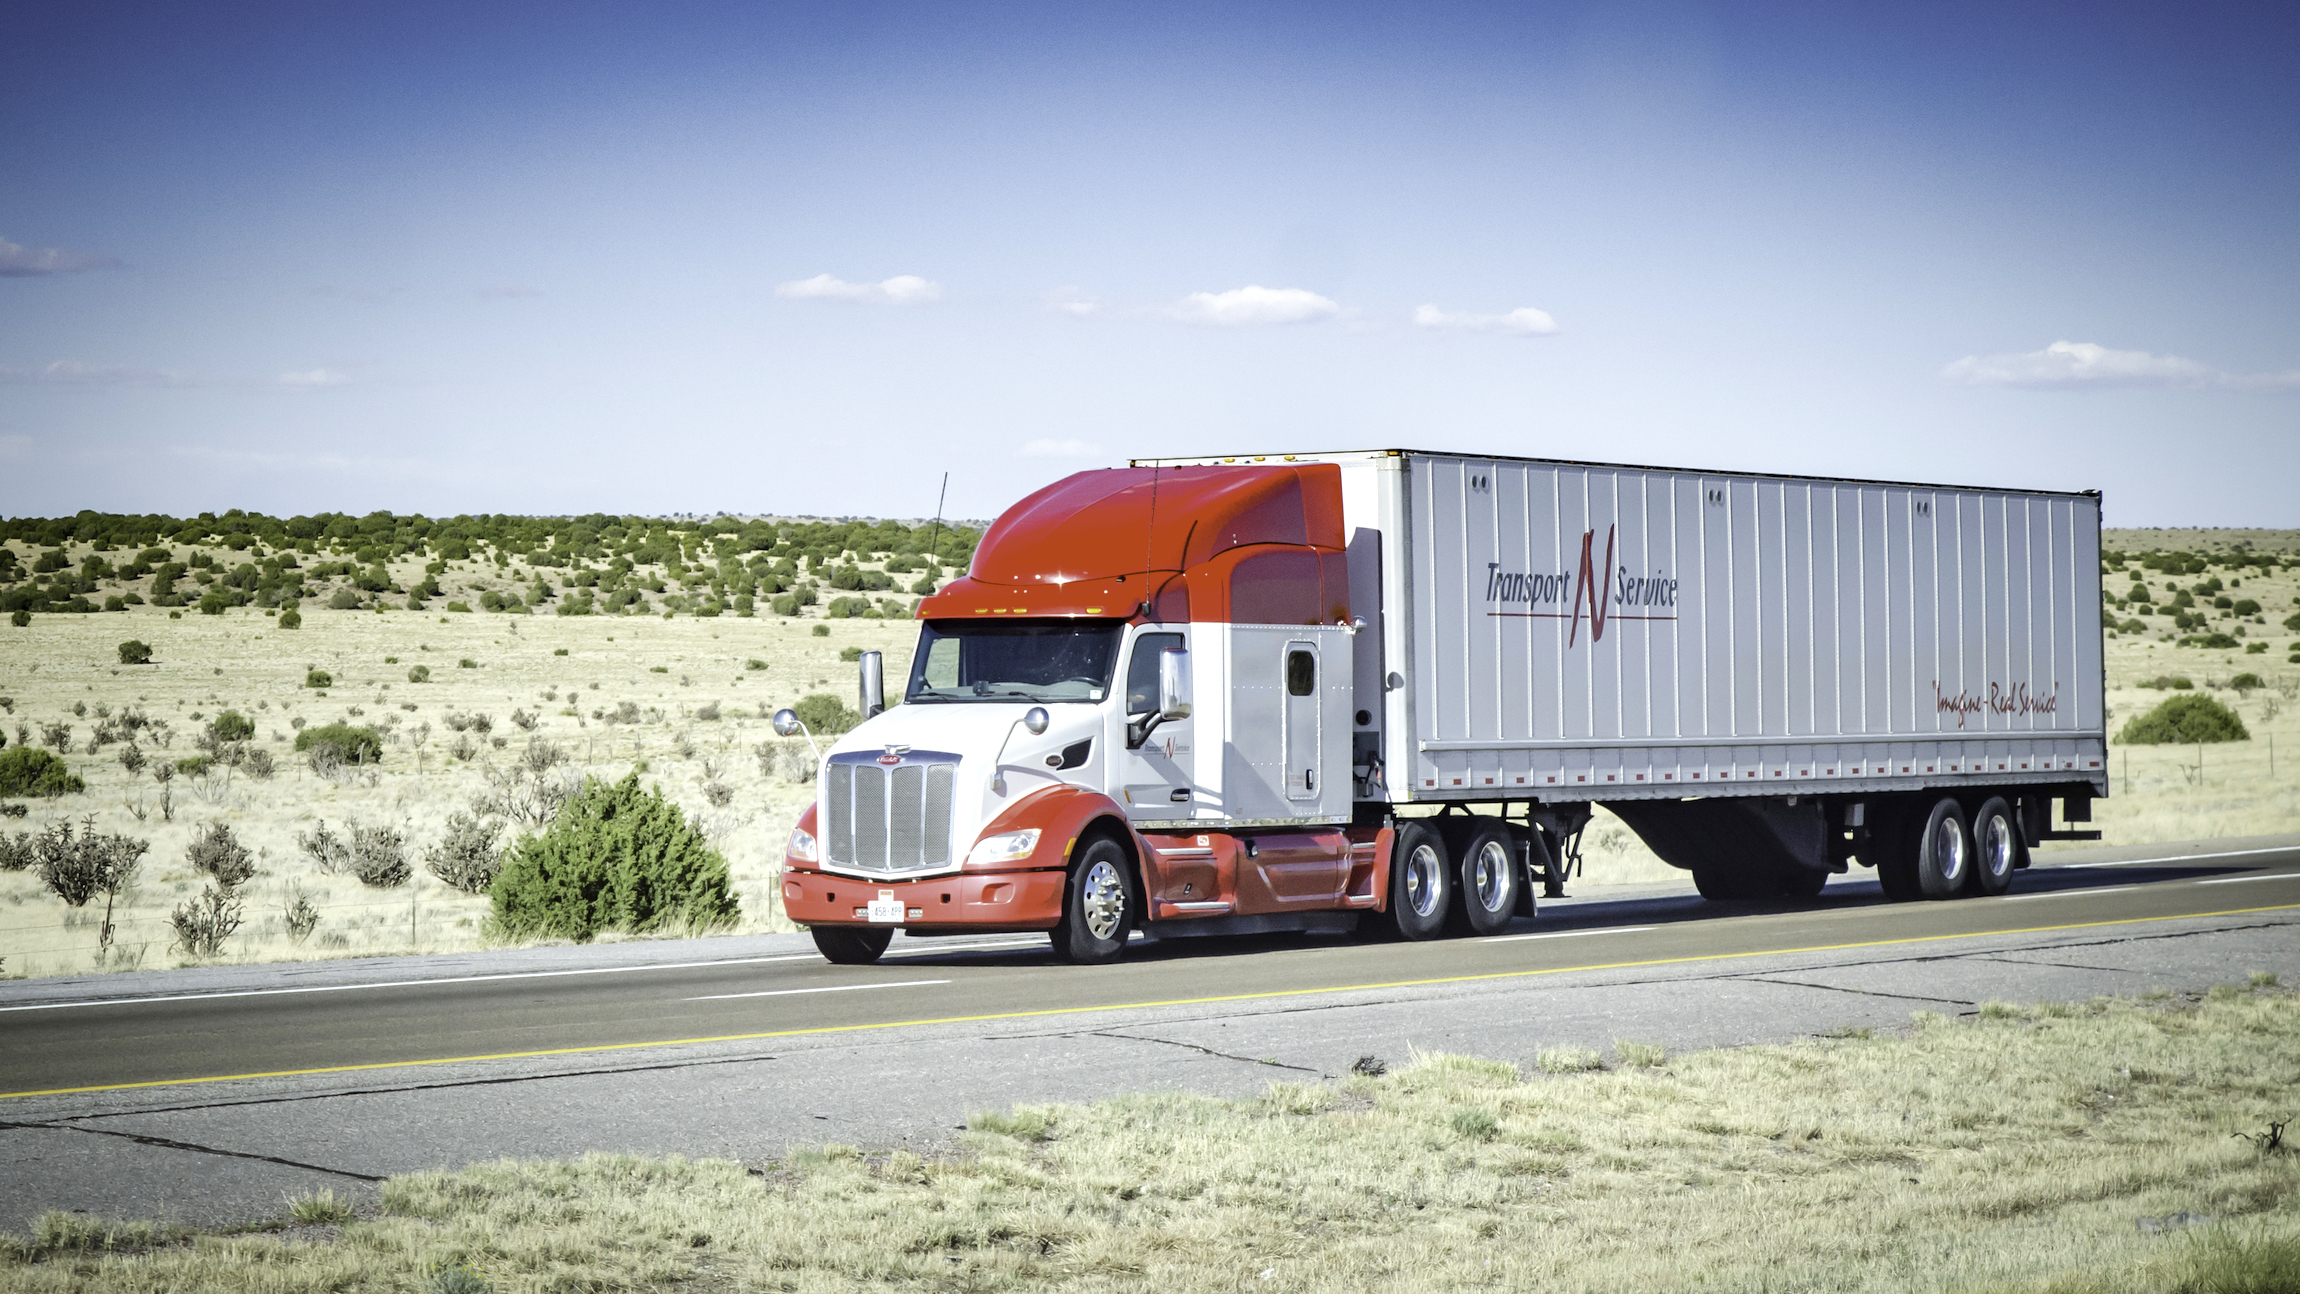 A tractor-trailer of Transport n Service, which was acquired by Kriska Transportation Group.